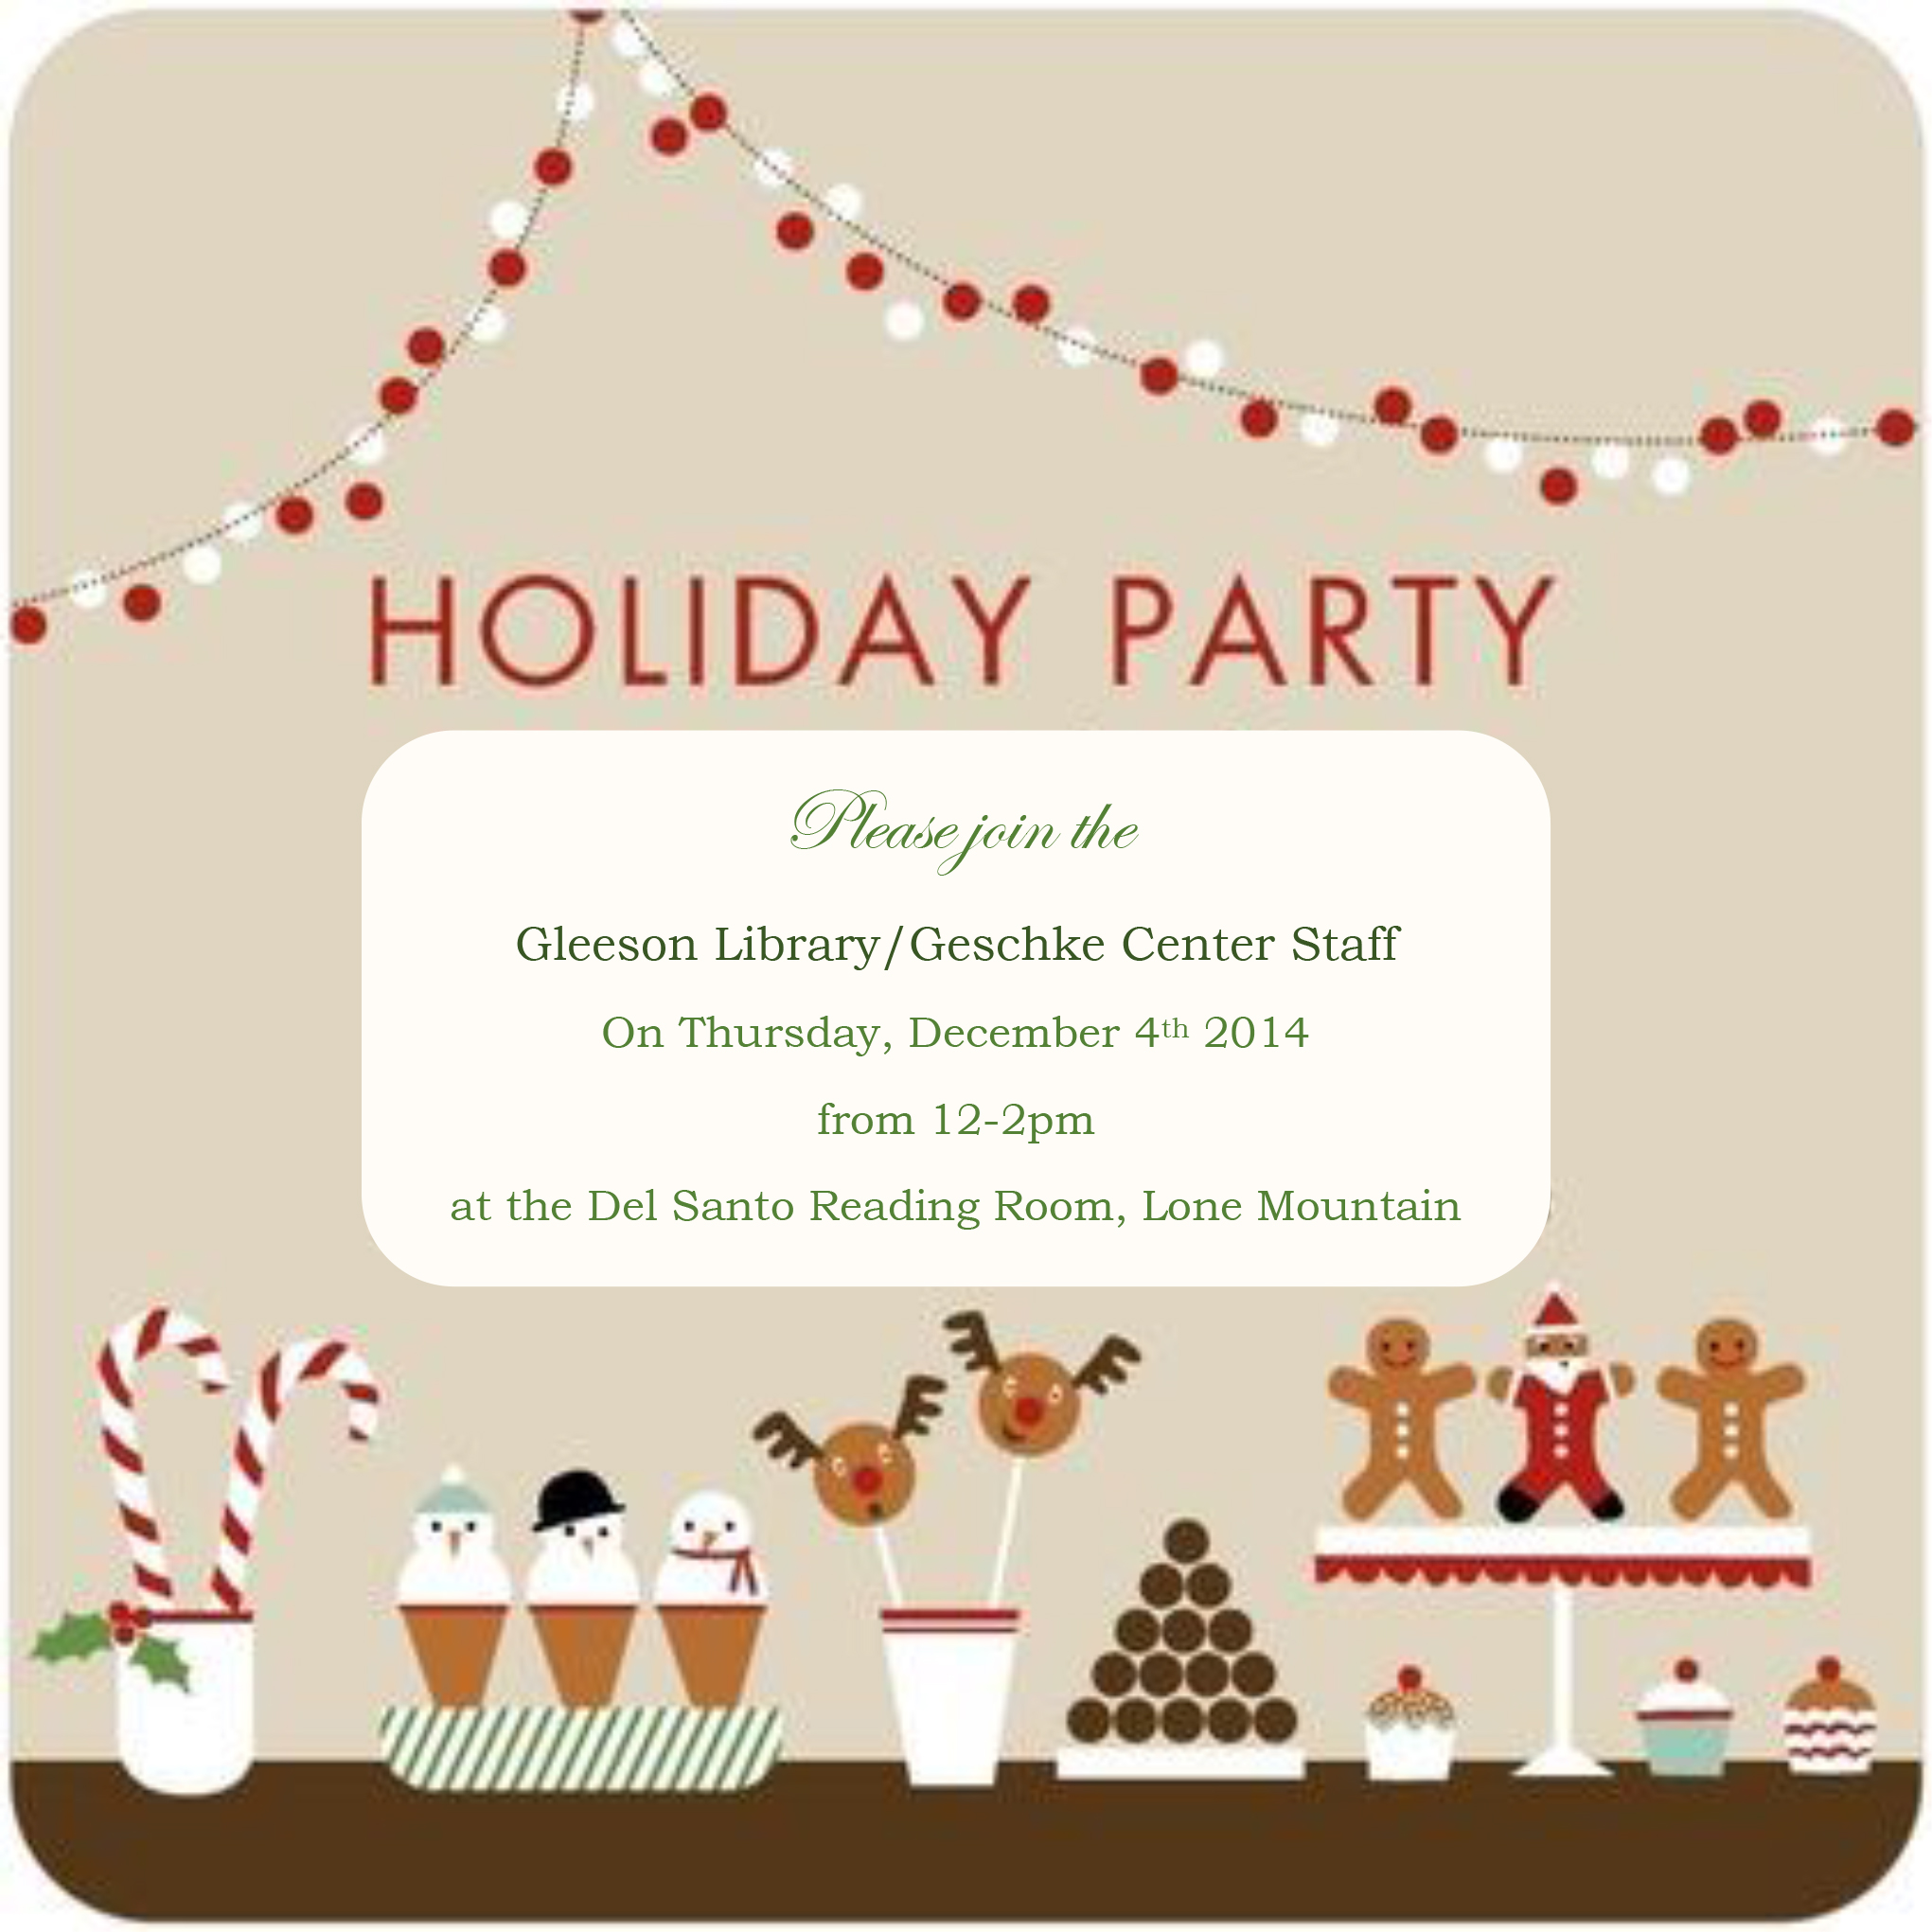 Holiday Party Invitation 2014